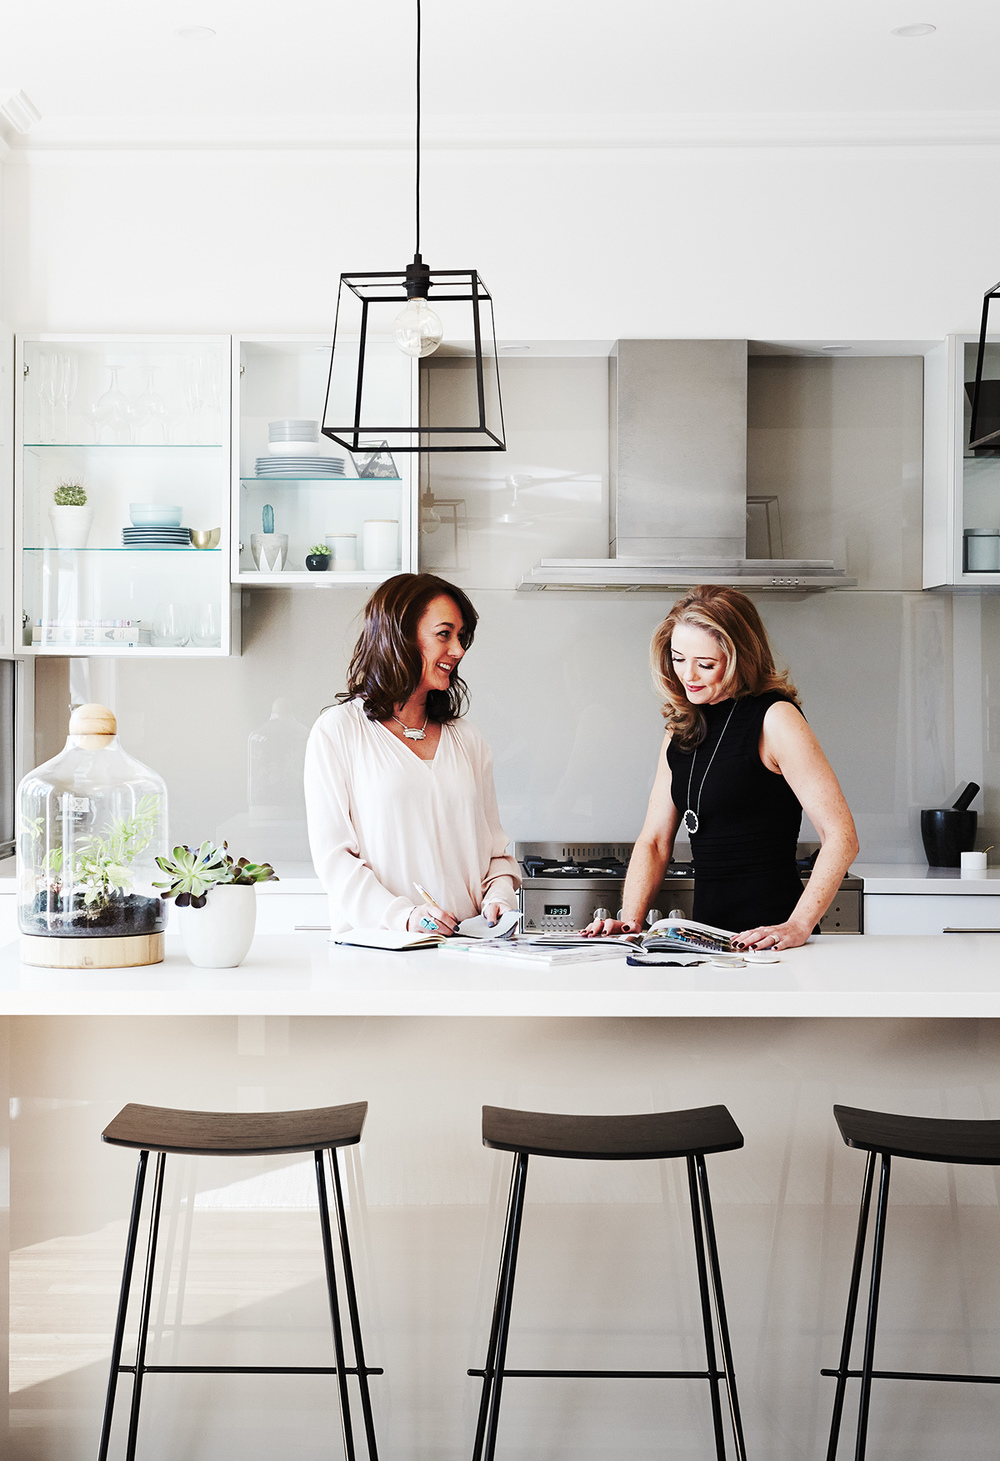 Designer Michelle Hart (left) pictured with client Georgina in the stunning, open kitchen. Bar stools from Relax House.